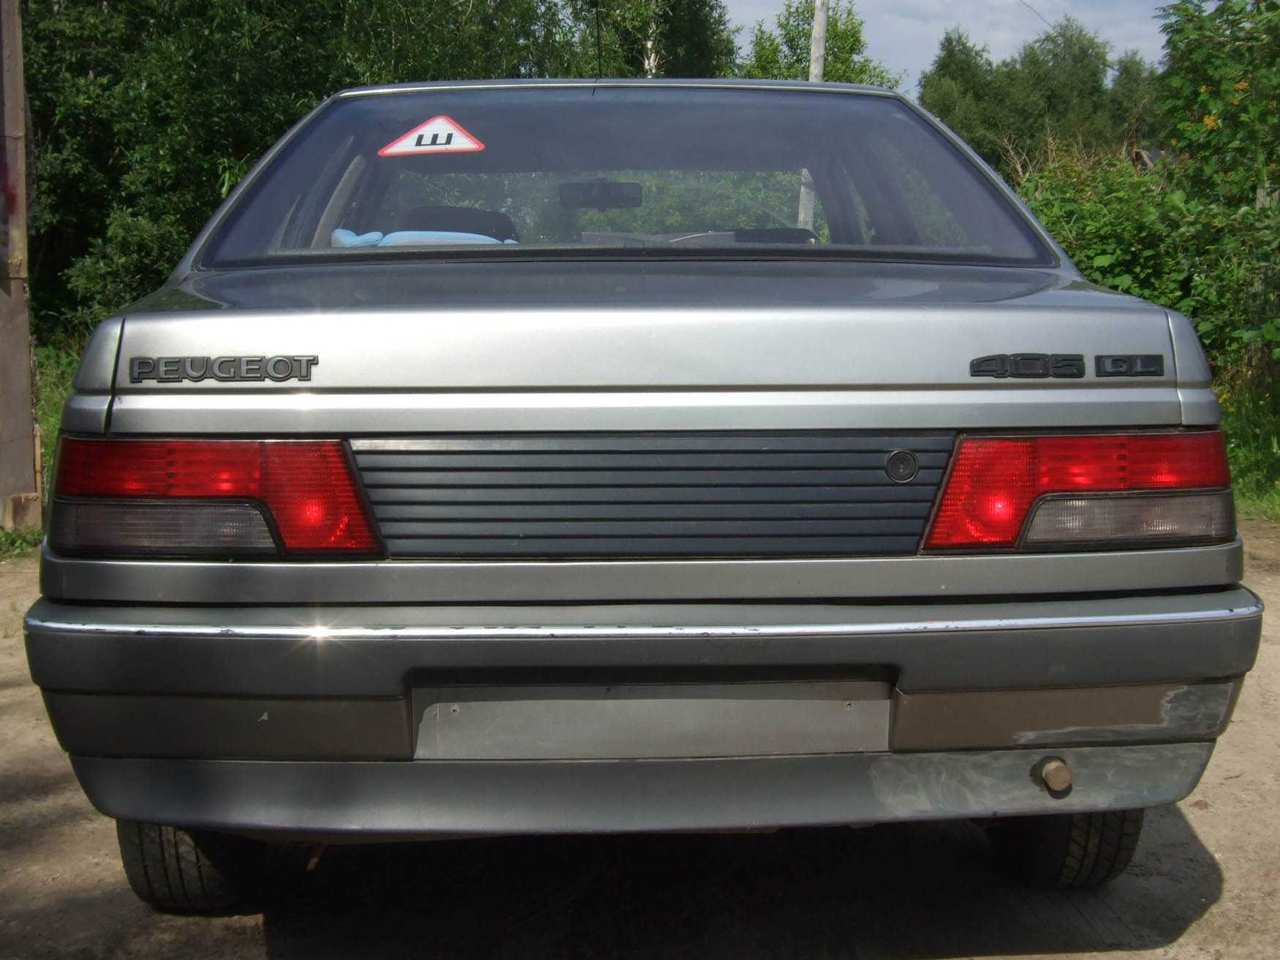 1988 Peugeot 405 Specs  Engine Size 1 6l   Drive Wheels Ff